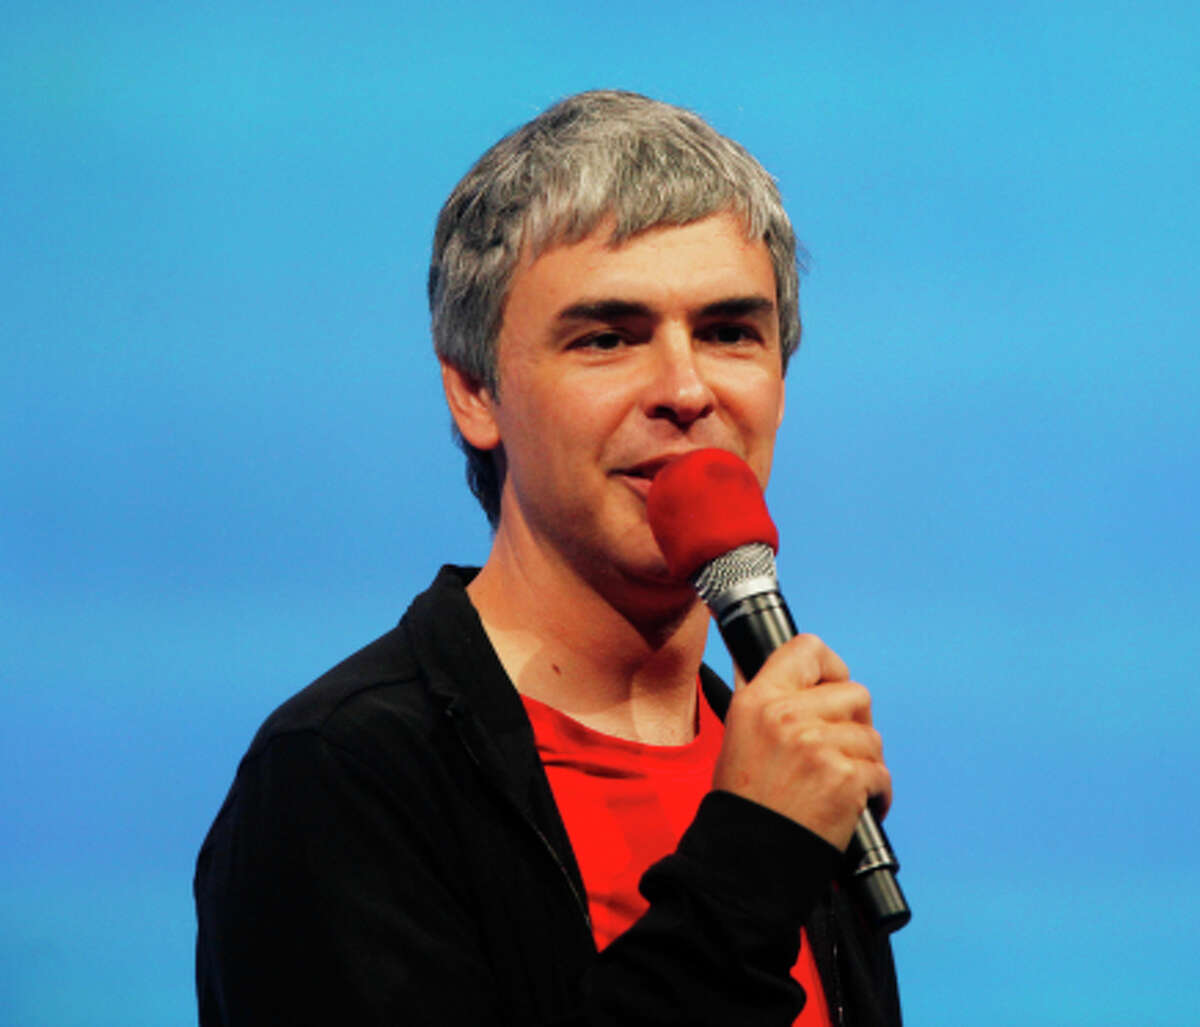 """Stories behind Bay Area tech company names Alphabet When Google co-founder Larry Page introduced holding company Alphabet on August 10, he explained: """"We liked the name Alphabet because it means a collection of letters that represent language, one of humanity's most important innovations, and is the core of how we index with Google search! We also like that it means alpha bet (Alpha is investment return above benchmark), which we strive for!"""""""